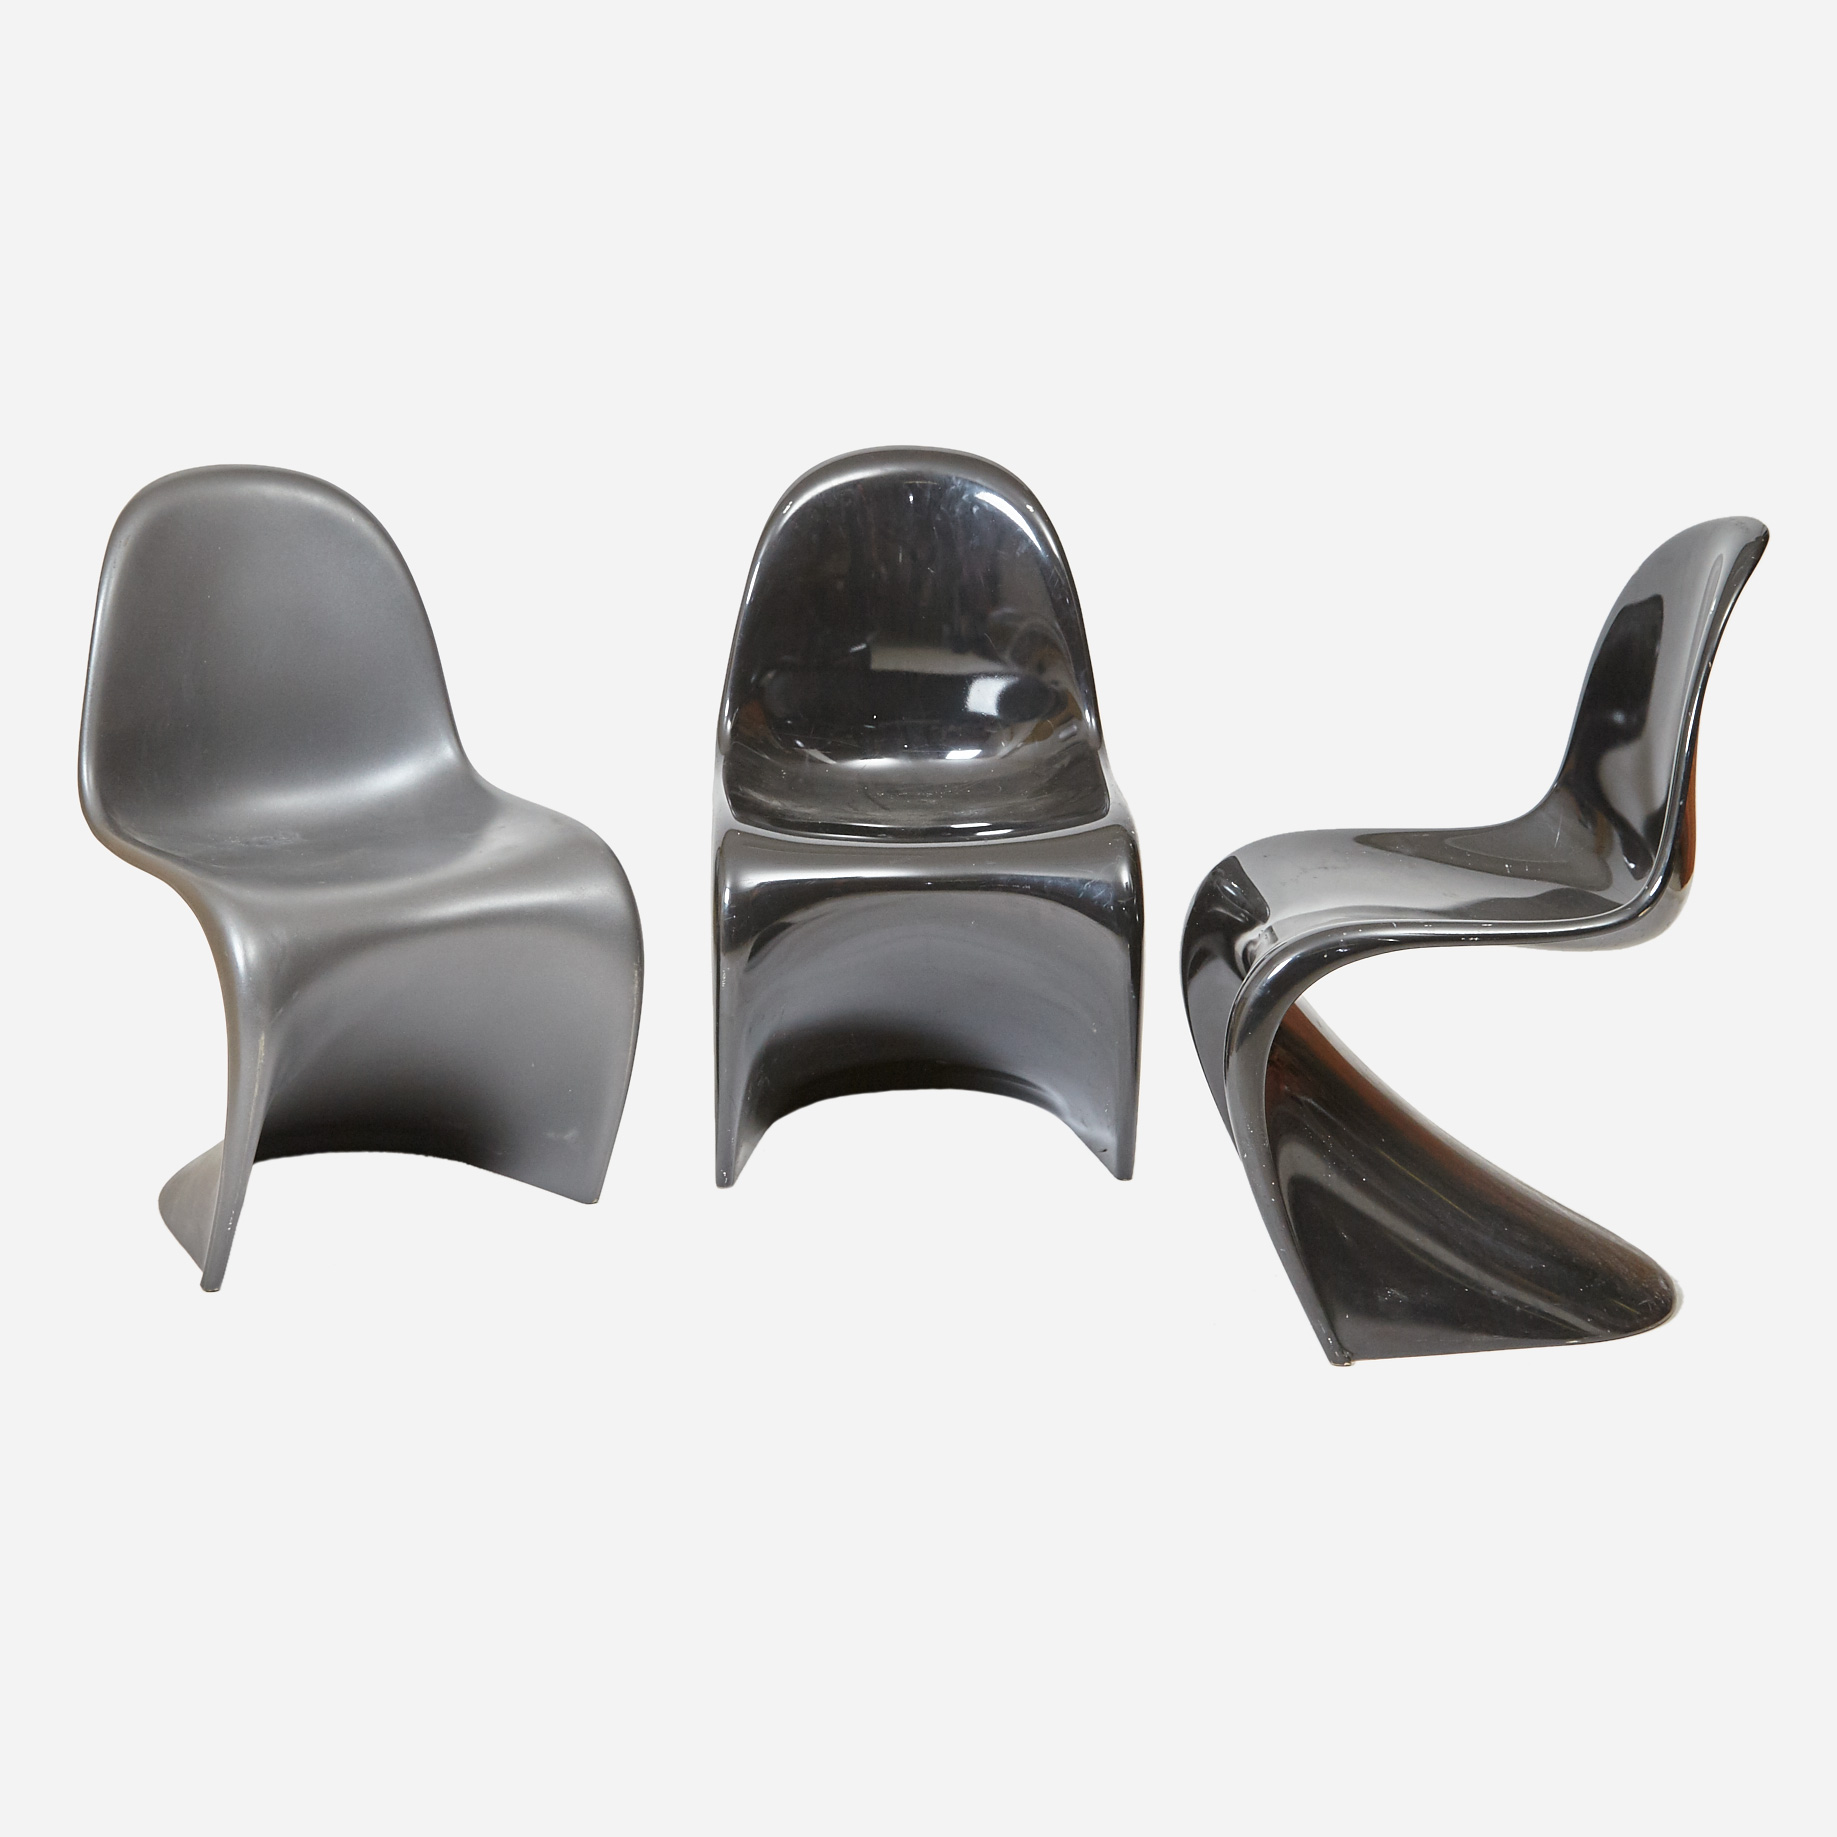 panton chair schwarz m bel z rich vintagem bel. Black Bedroom Furniture Sets. Home Design Ideas